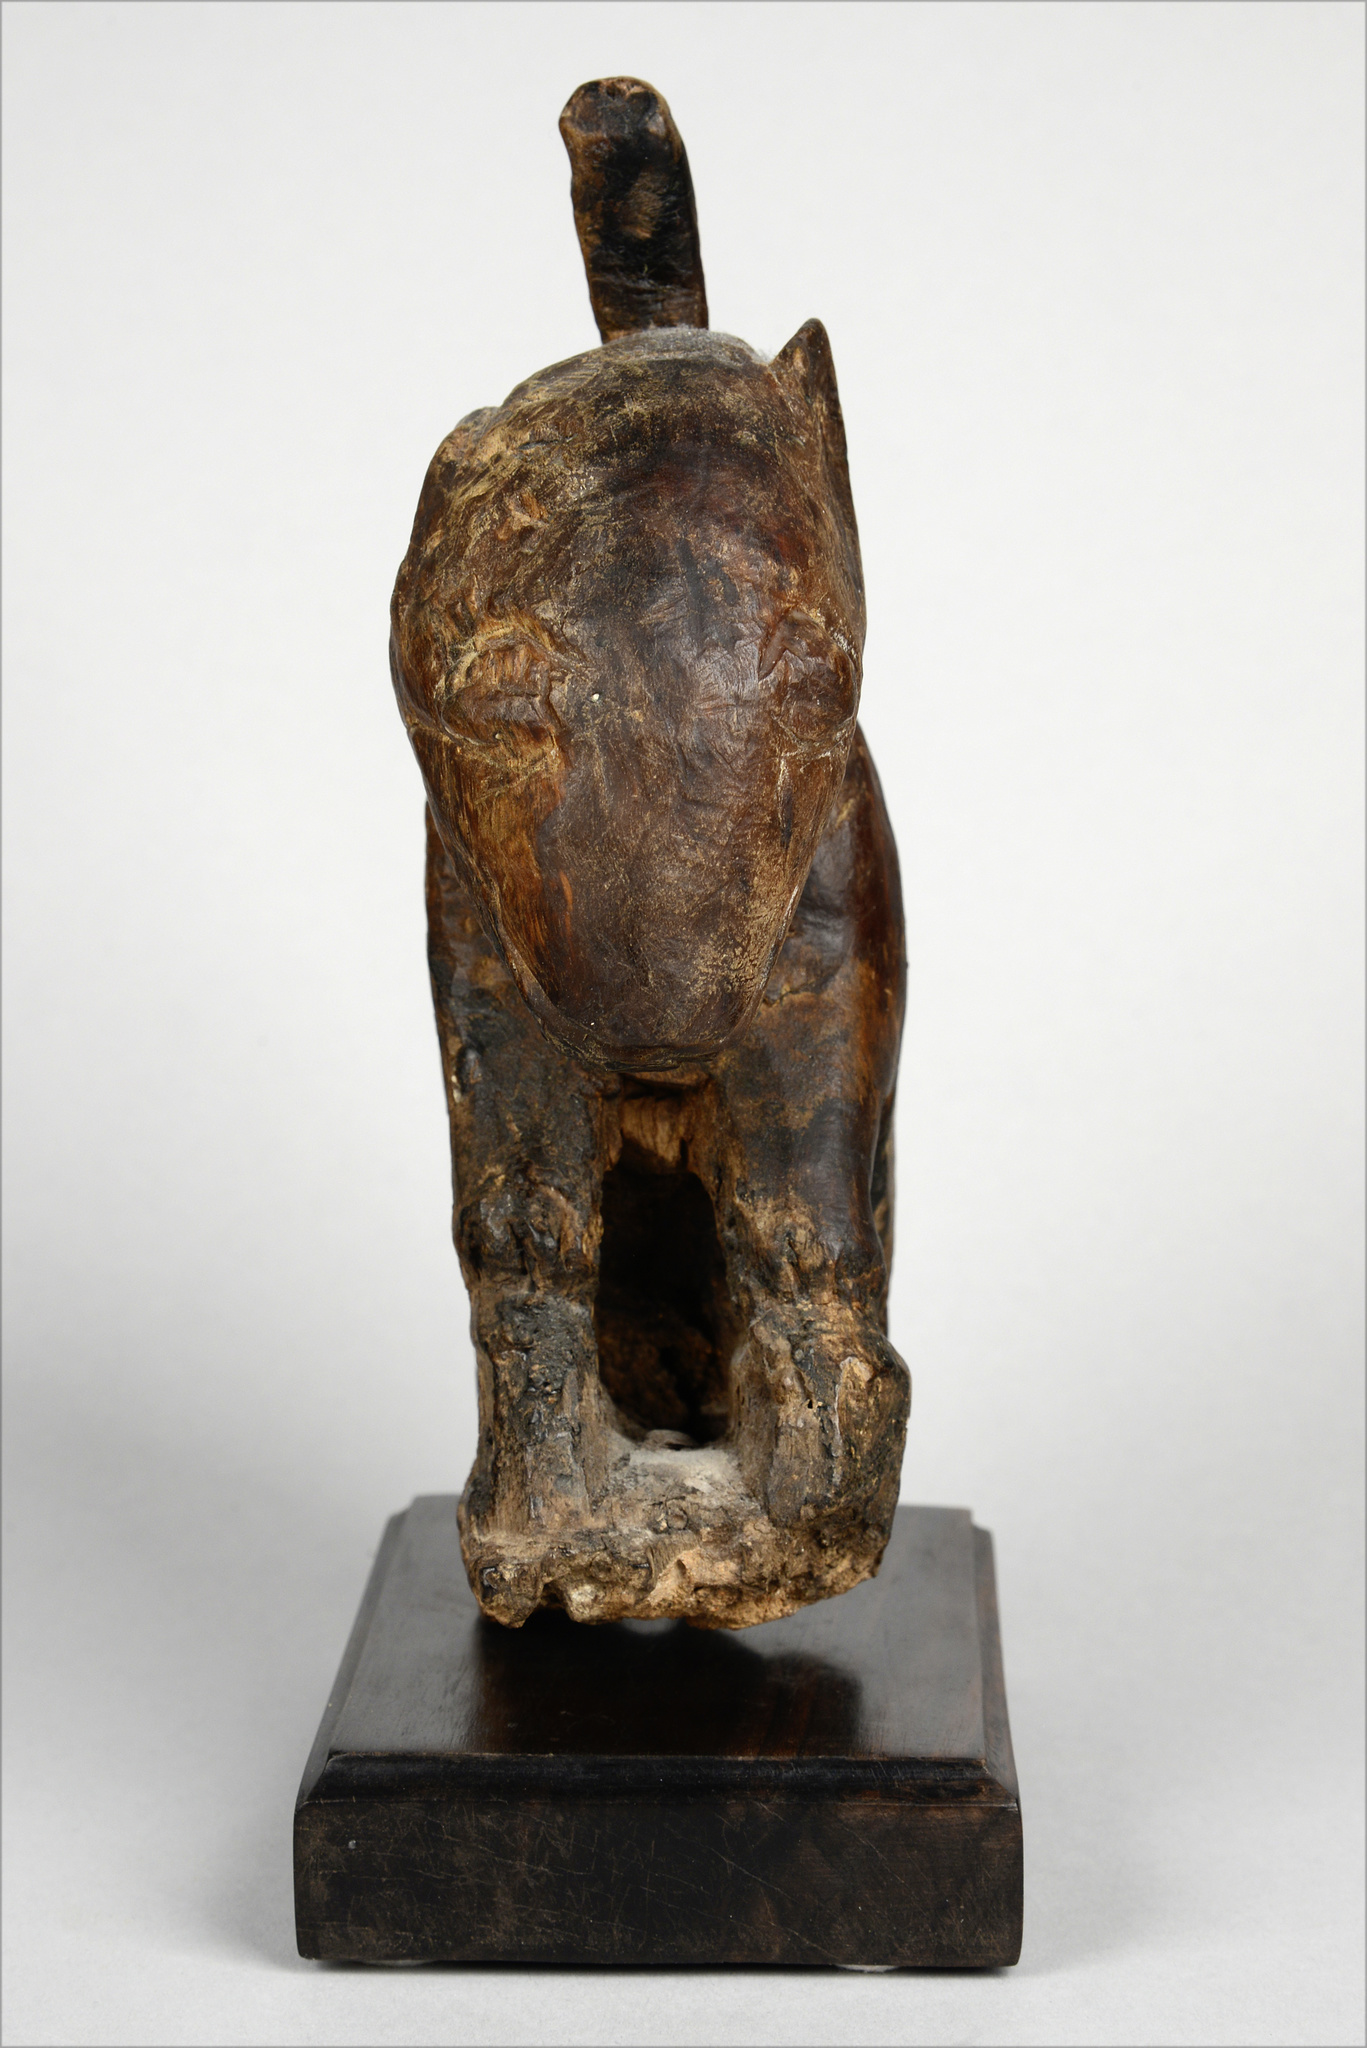 Altar figure in form of a squatting dog